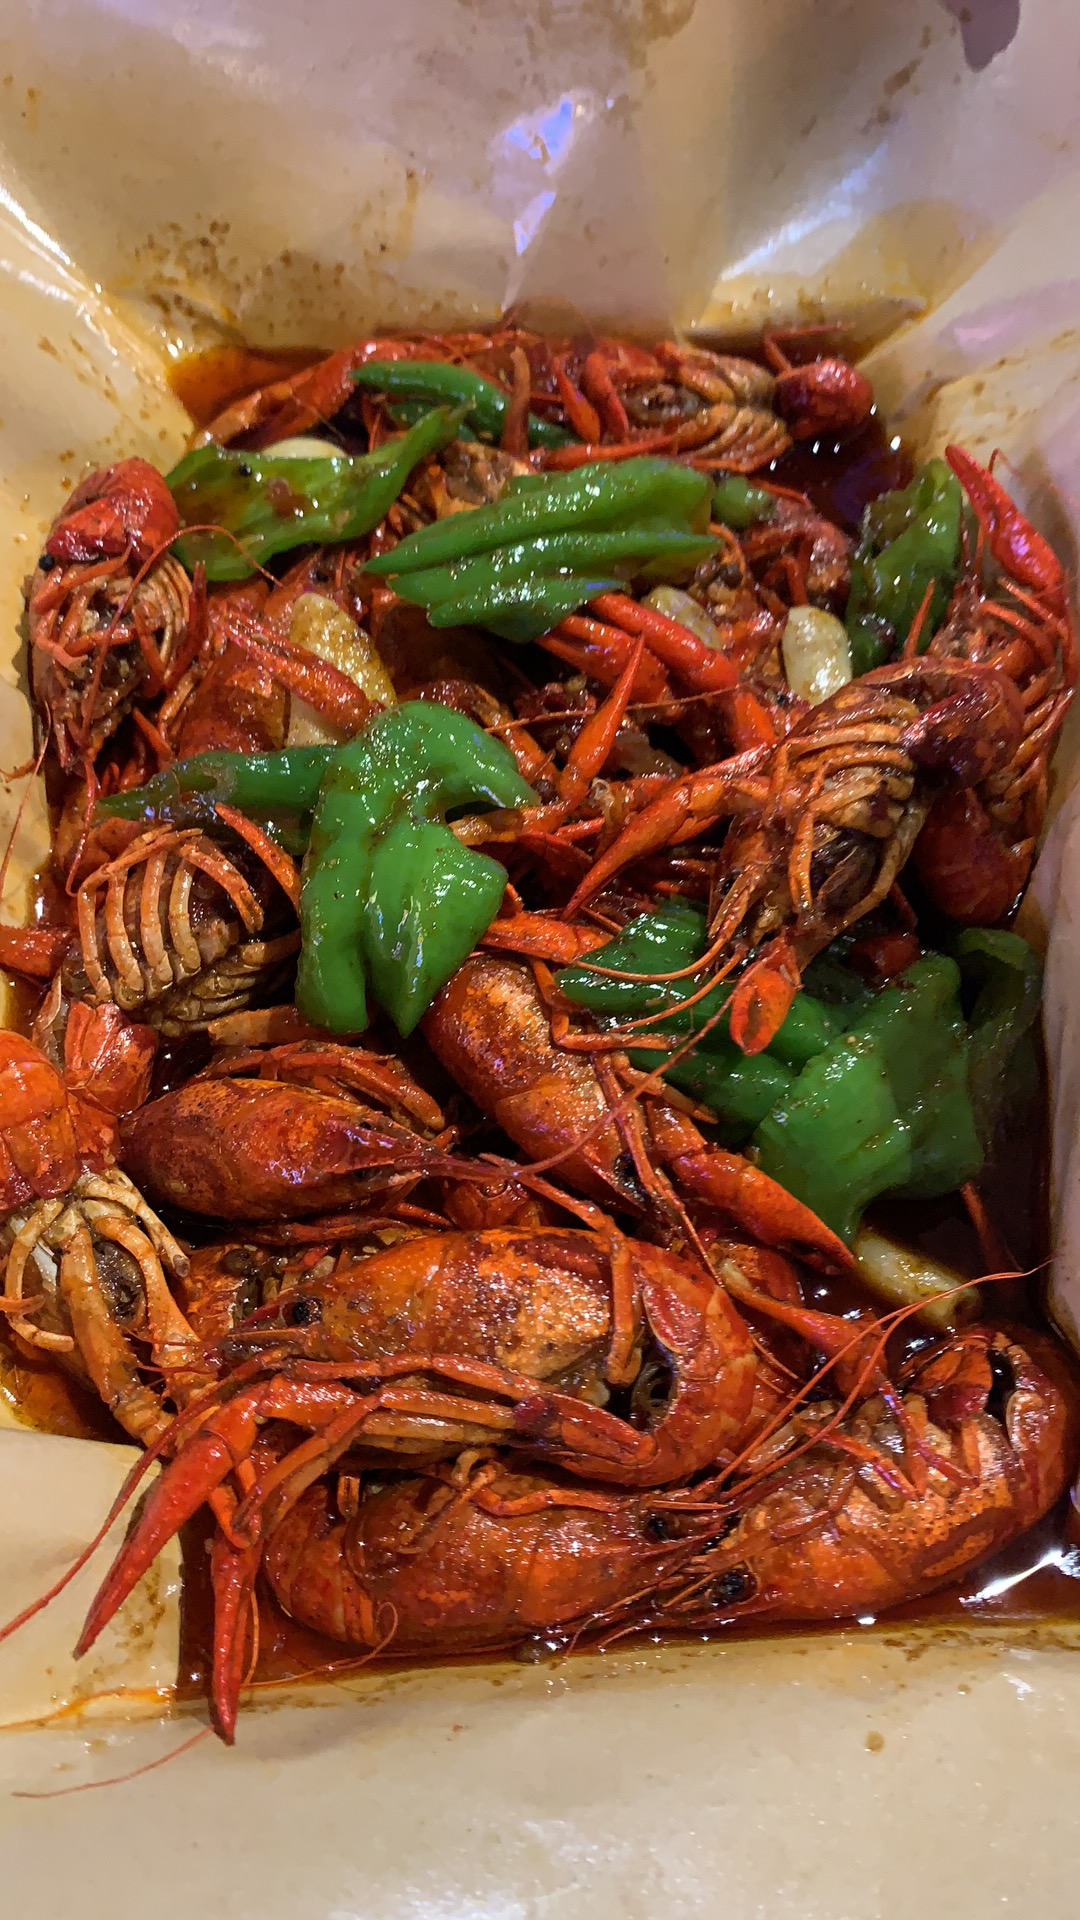 crayfish in red sauce with vegetables in plastic takeout container